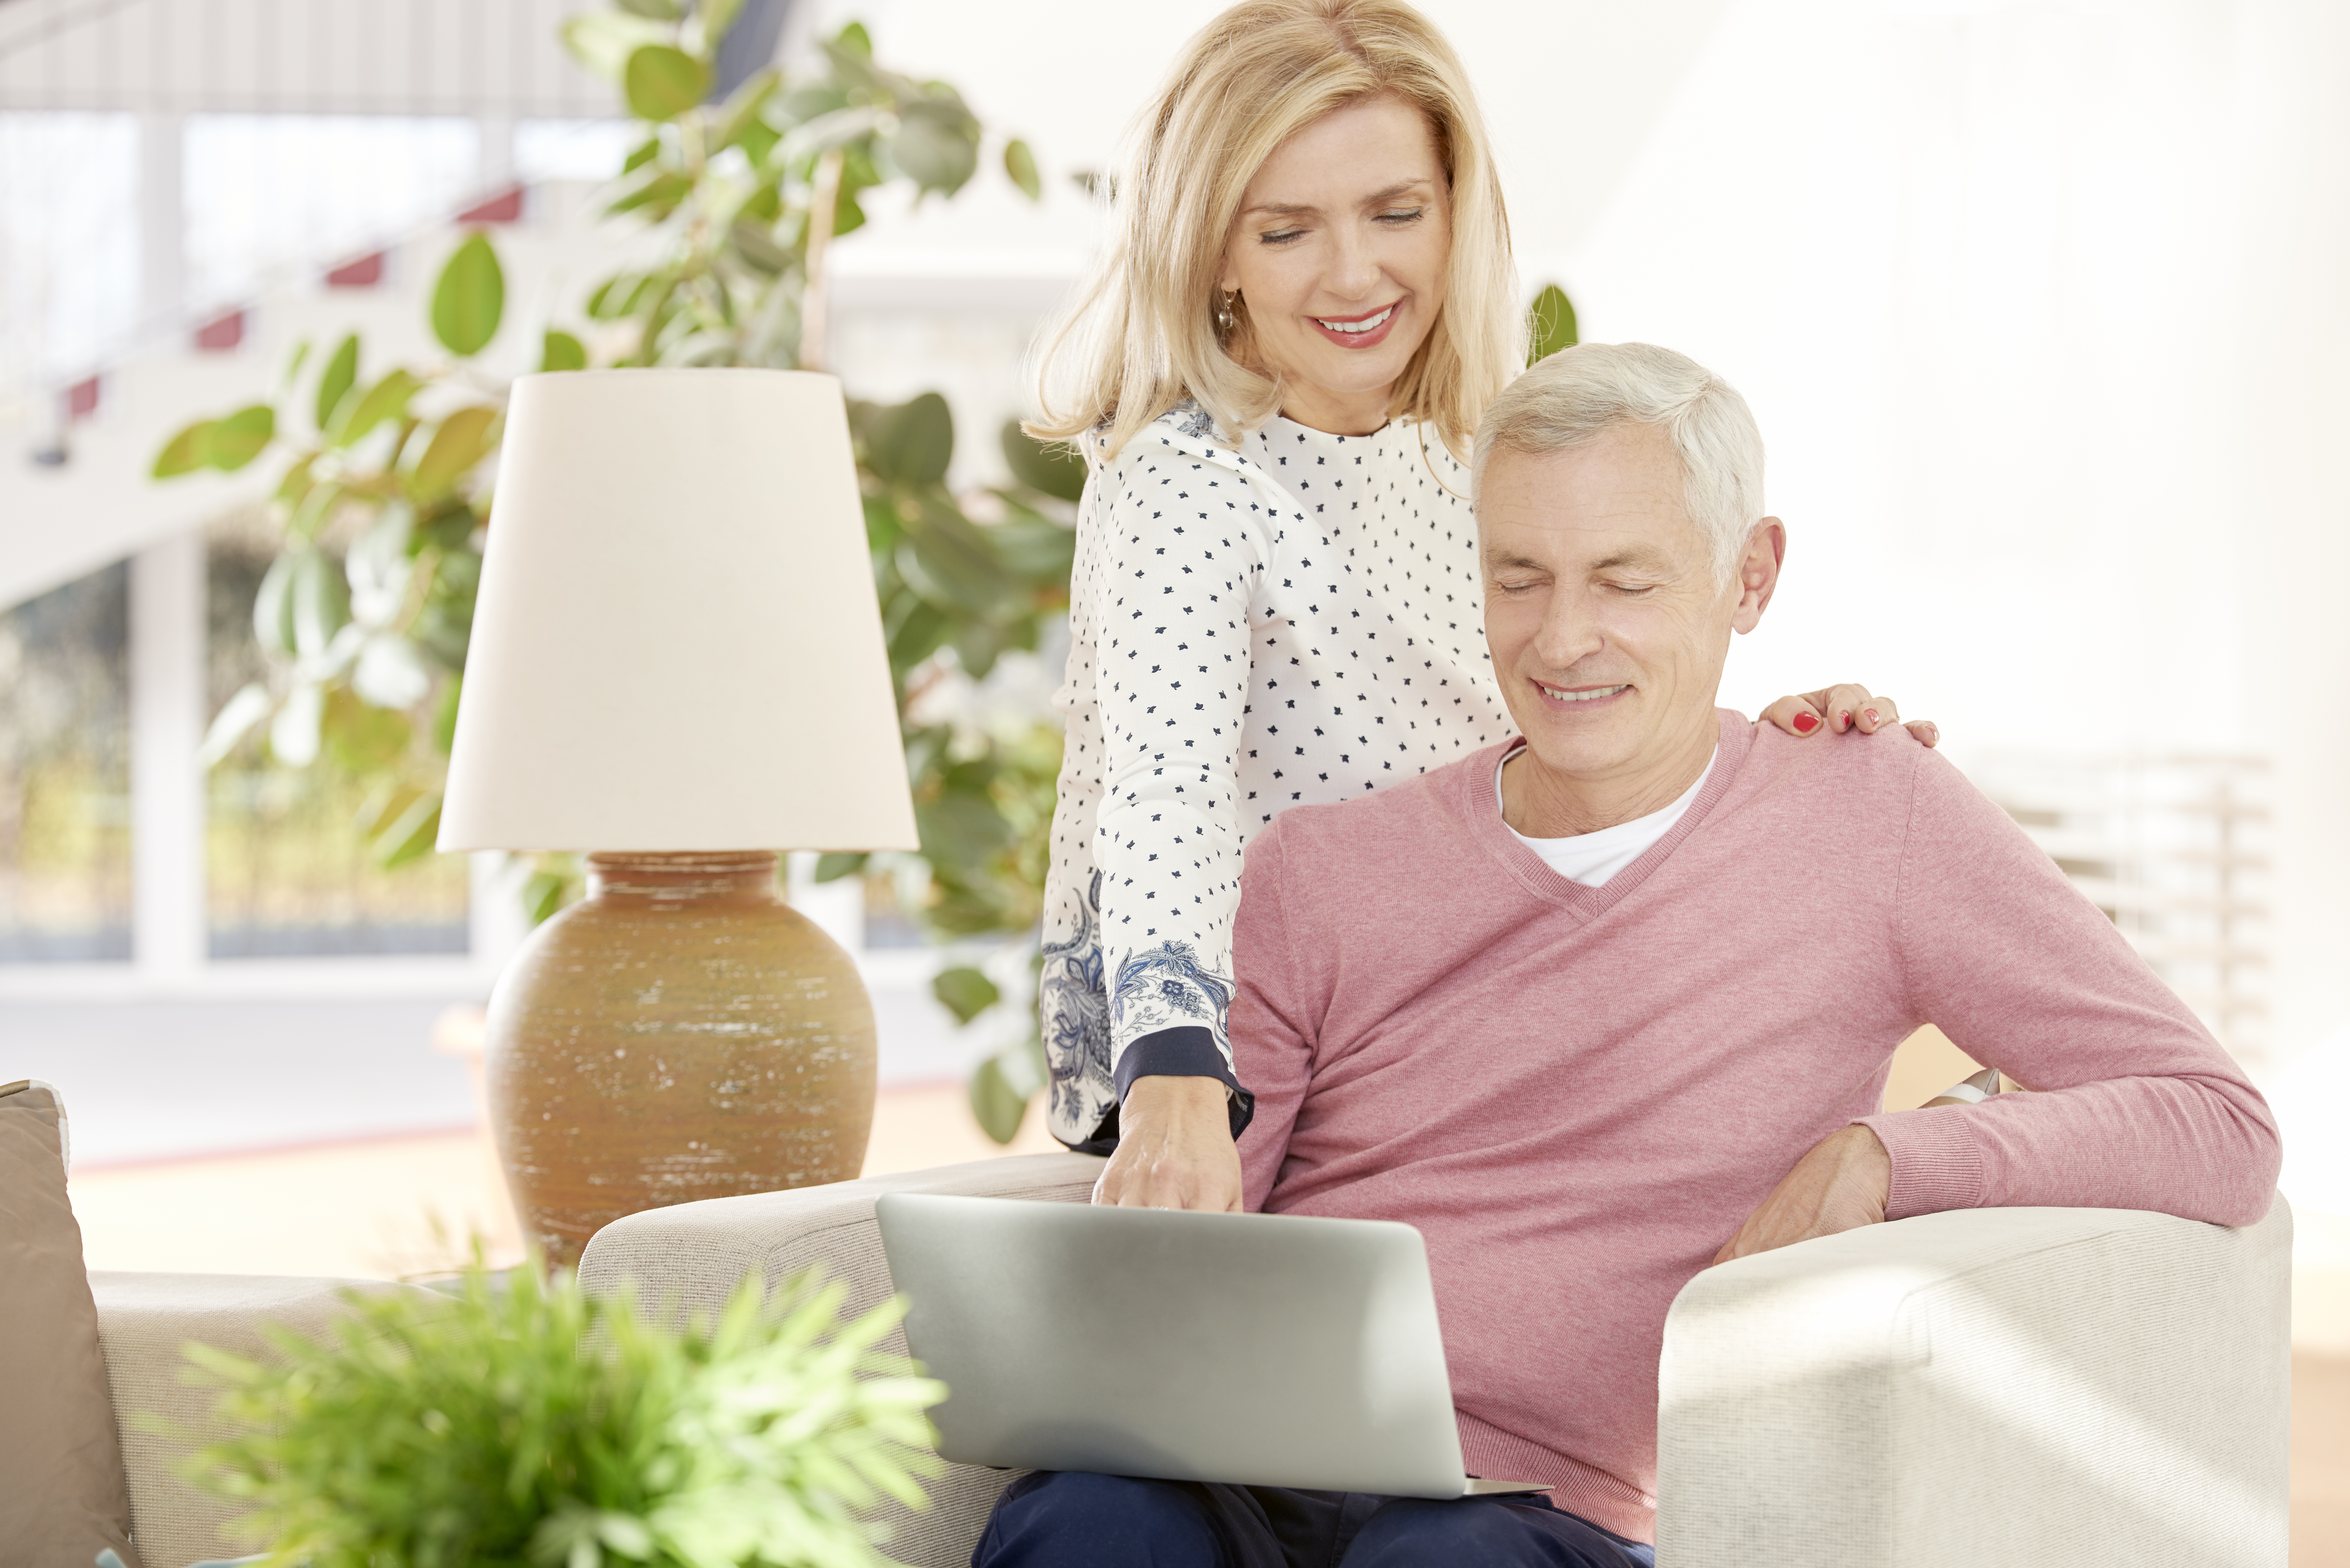 Mature couple planning donations on laptop